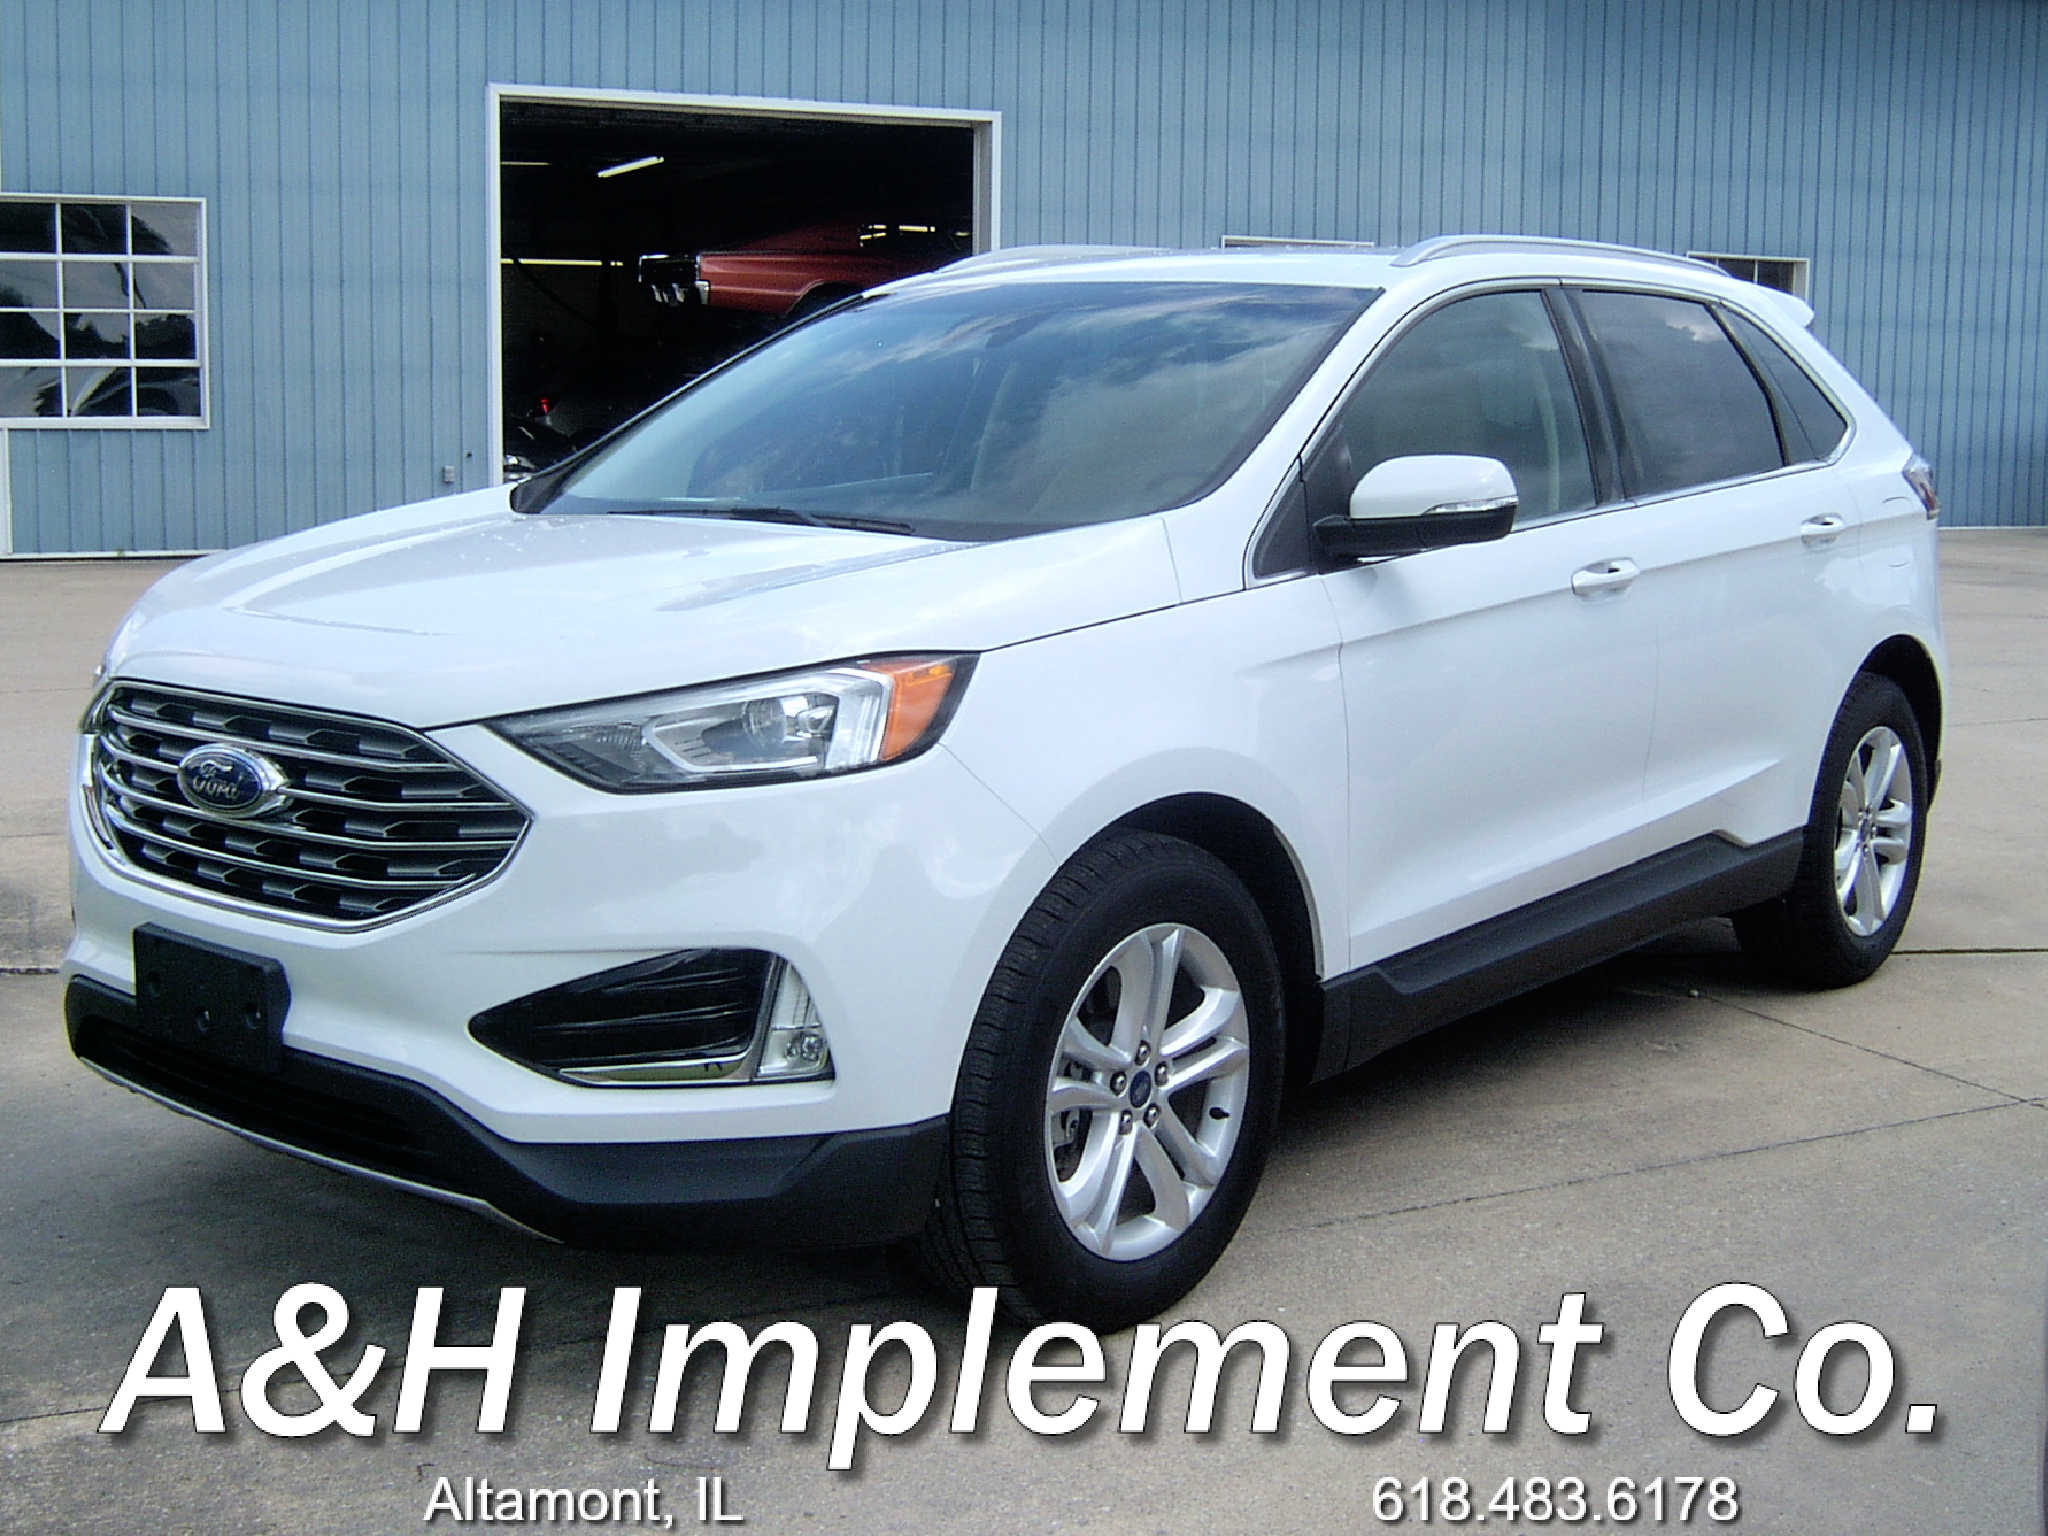 2019 Ford Edge SEL - White 1